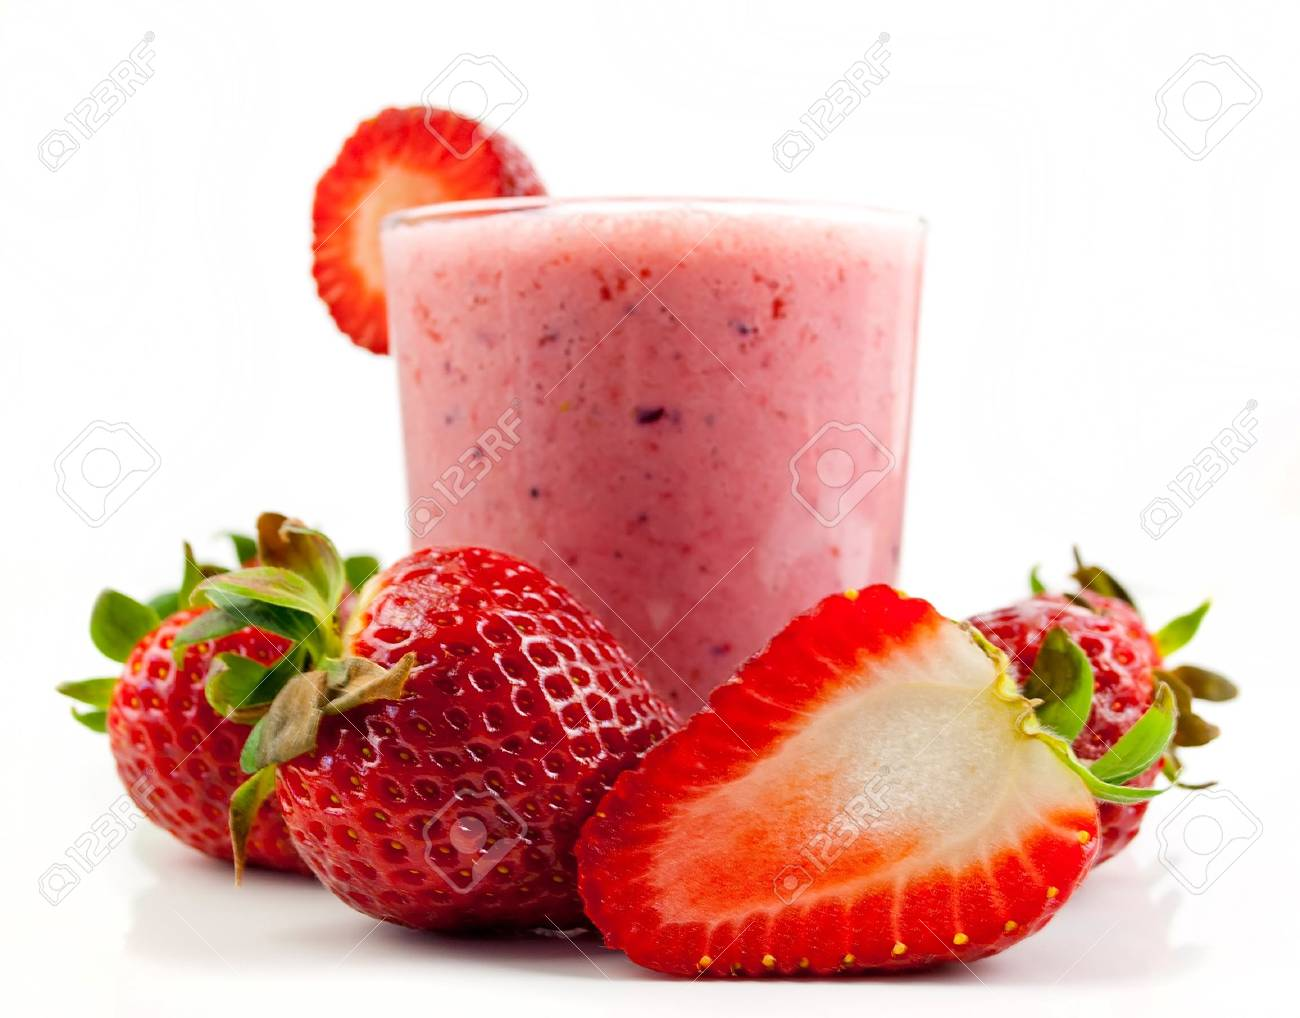 Healthy Strawberry Smoothie Isolated On White Background Stock 1300x1018